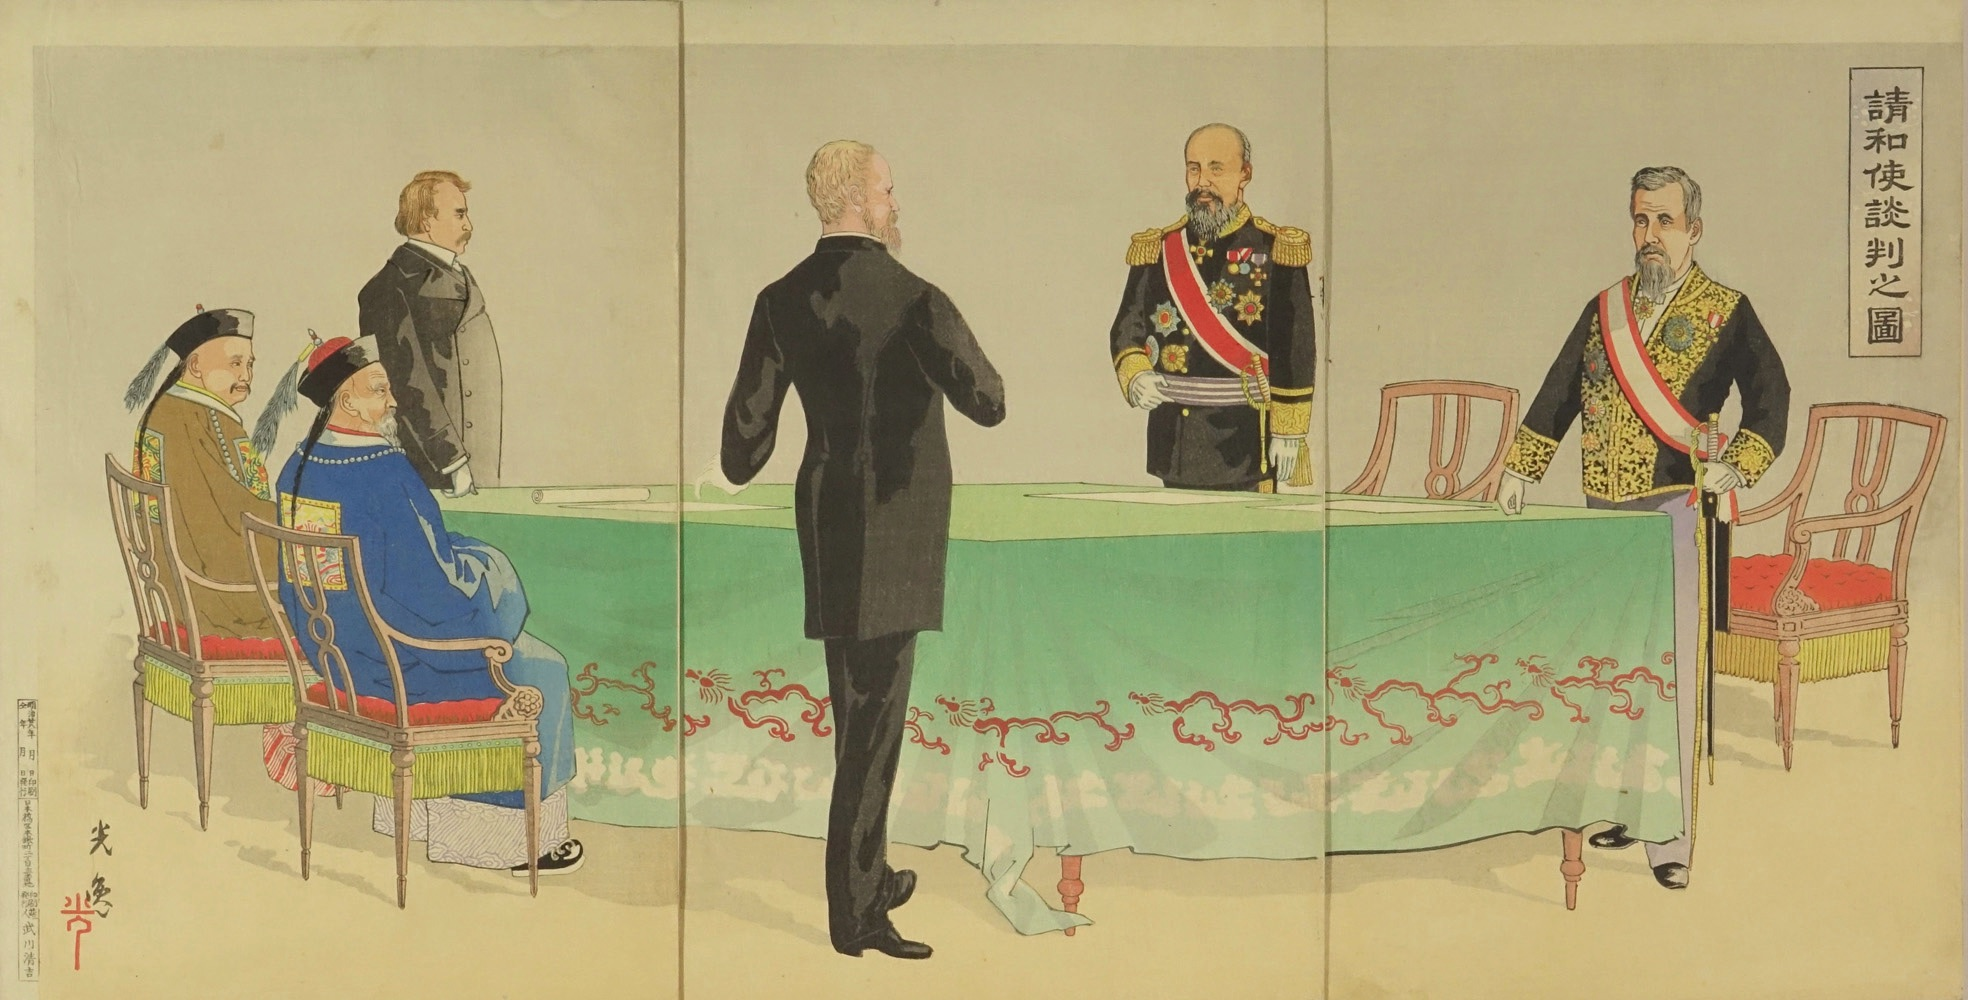 KOITSU Scene of piece negotiation between Japan and China, triptych